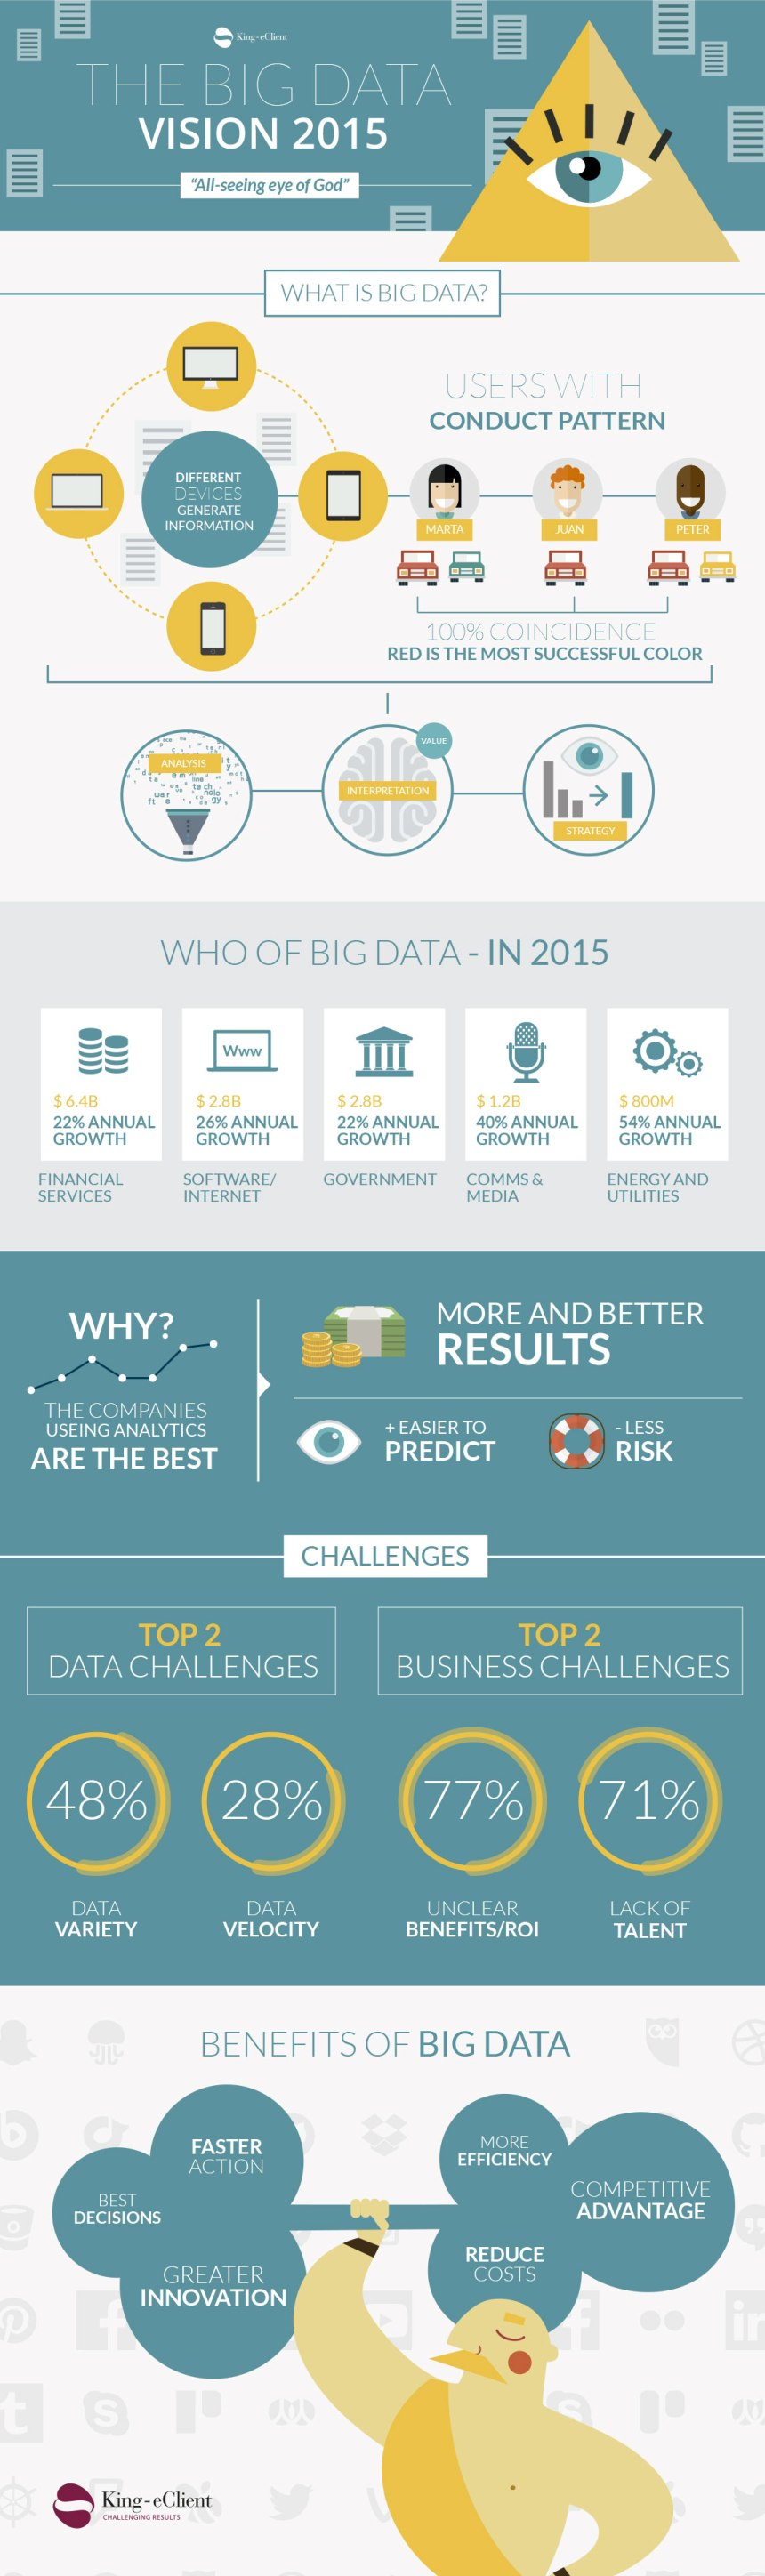 Big Data: visión para 2015